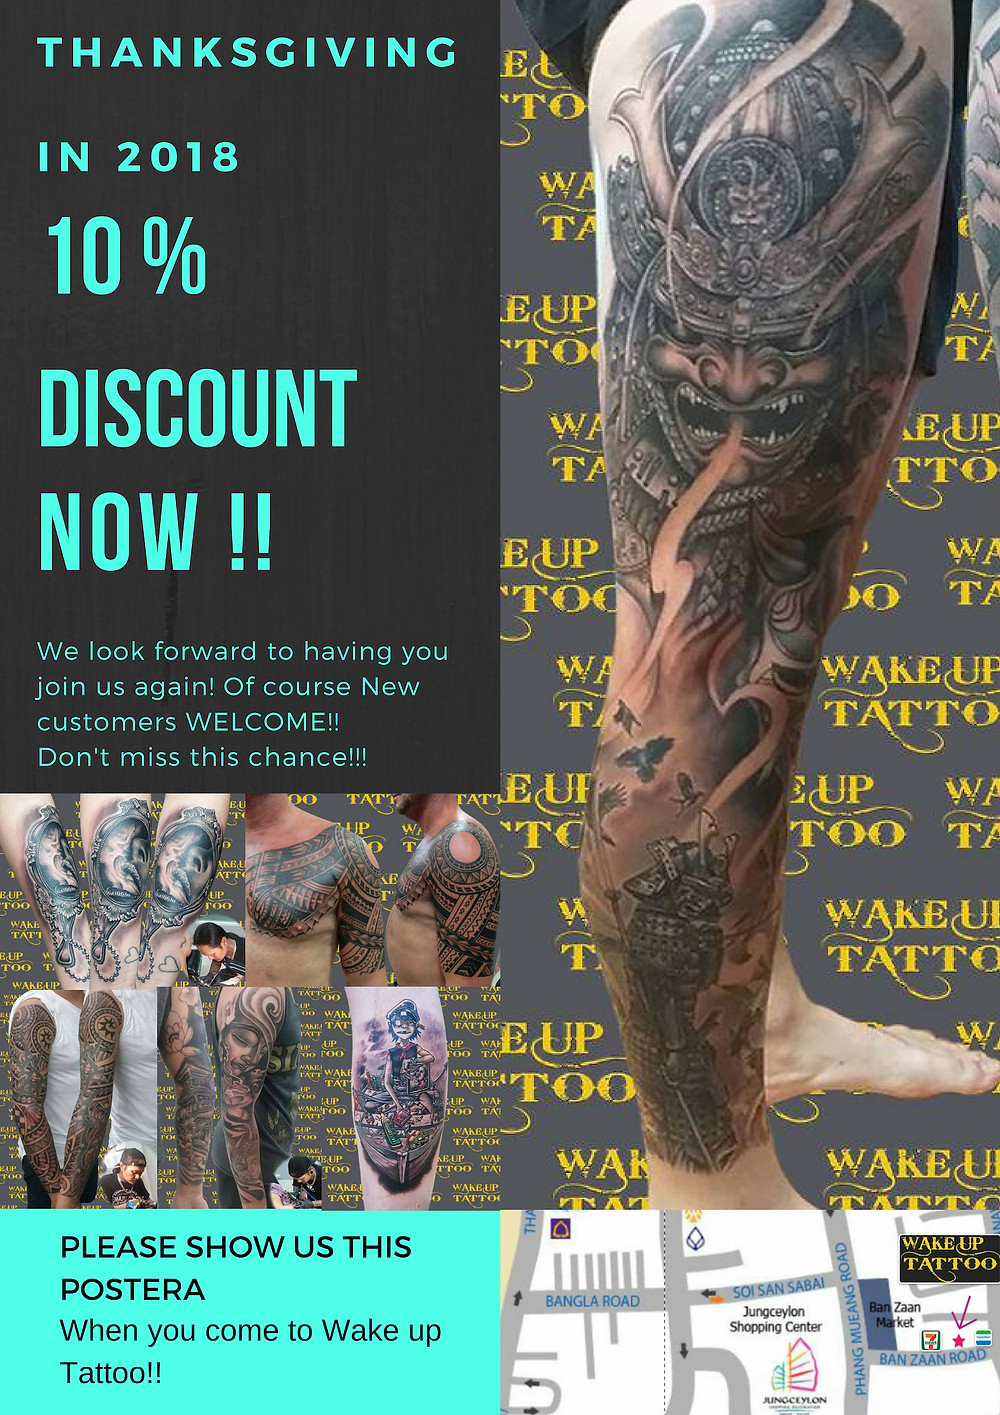 """Thanksgiving in 2018! 10% discount NOW until """"Dec 31th"""""""